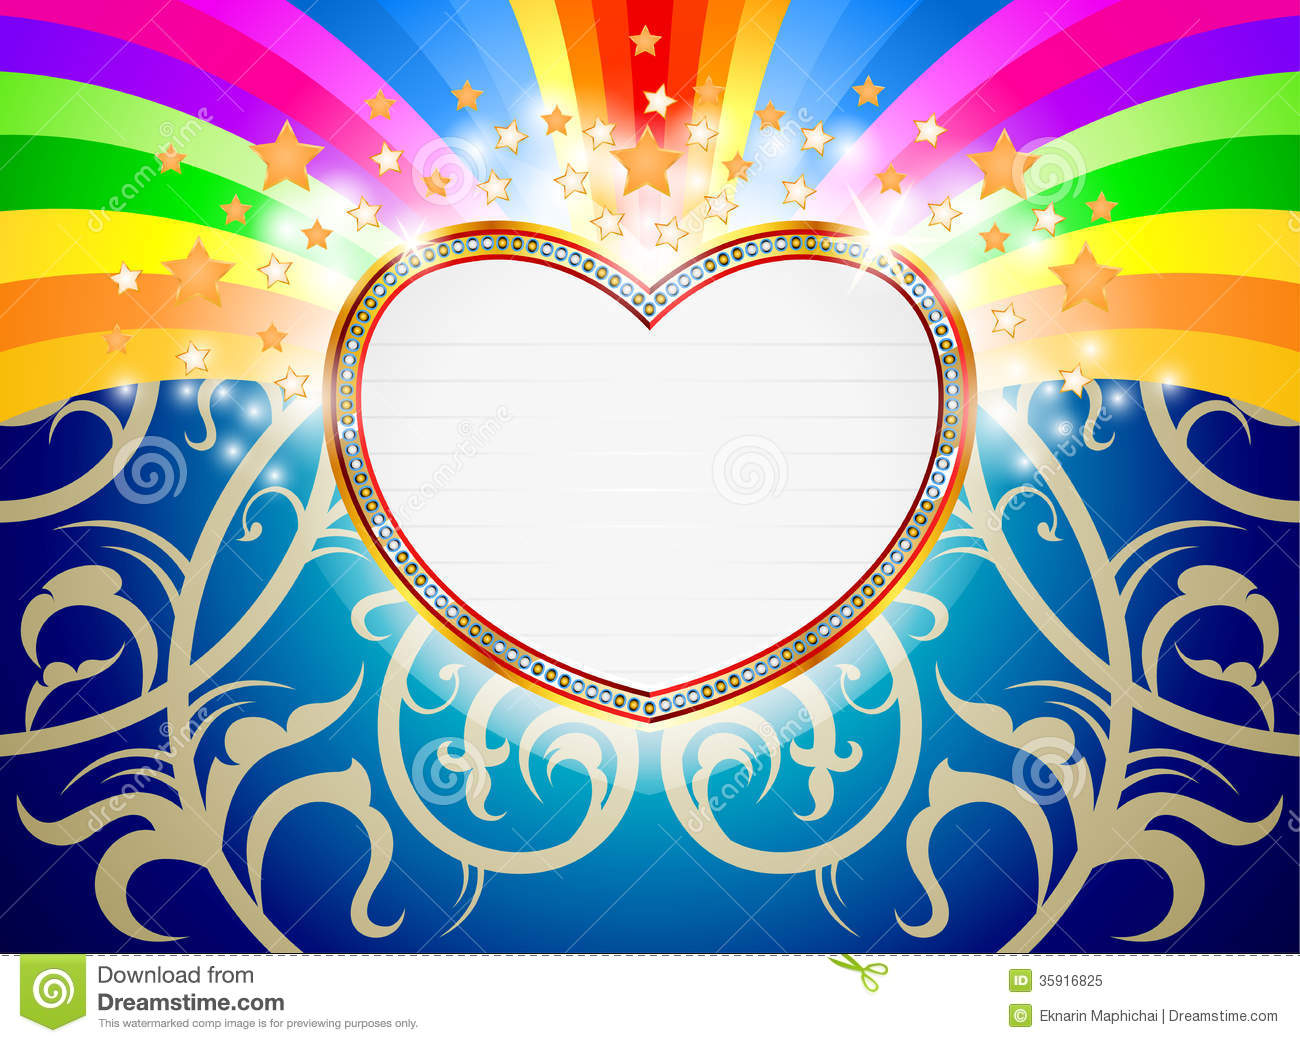 Glossy heart marquee stock illustration. Image of pattern ...